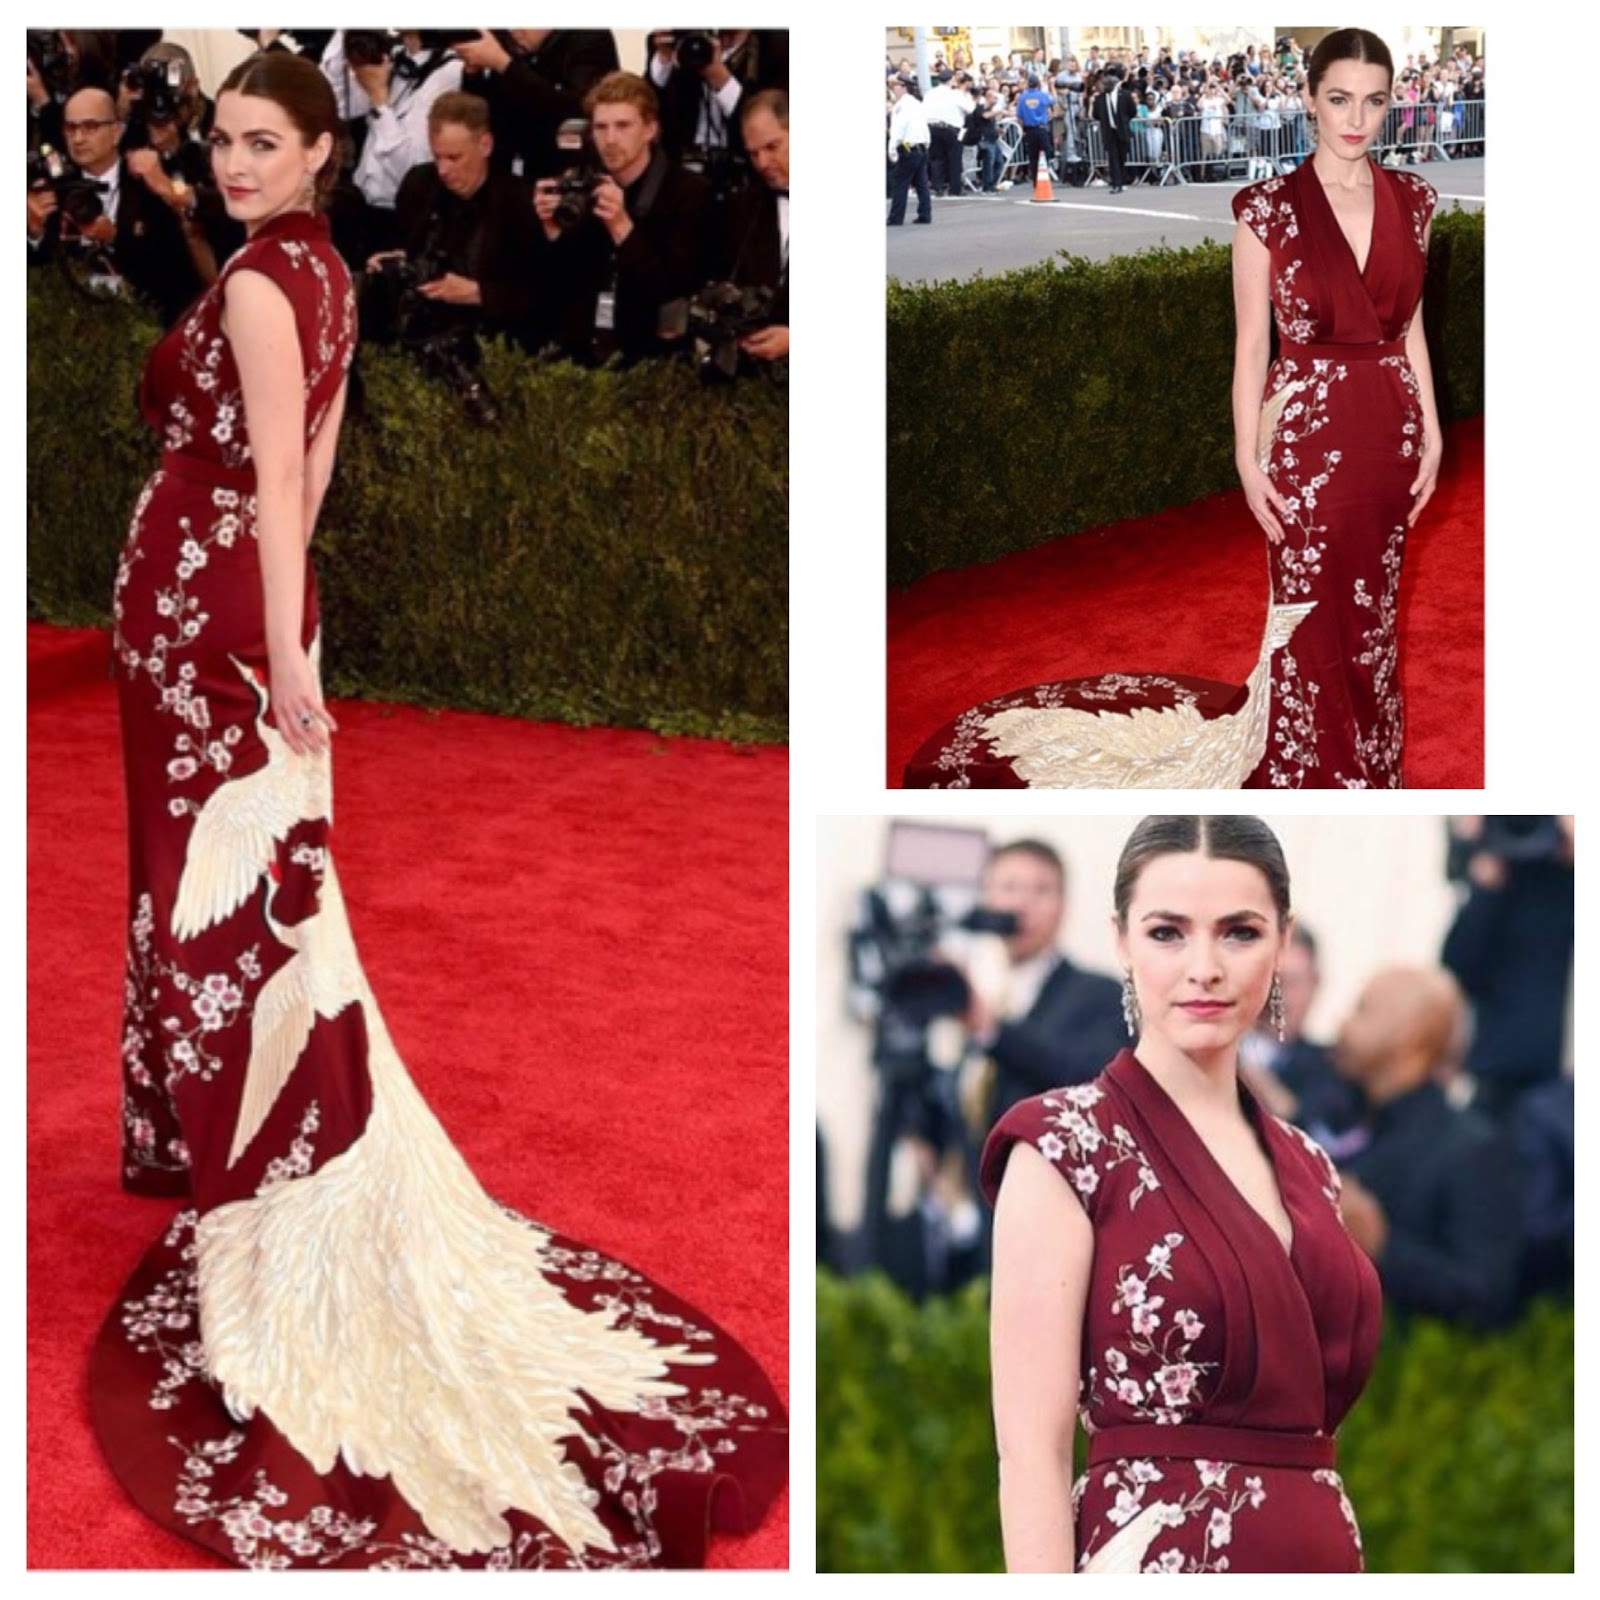 Bee Shaffer MET GALA 2015 in Pictures